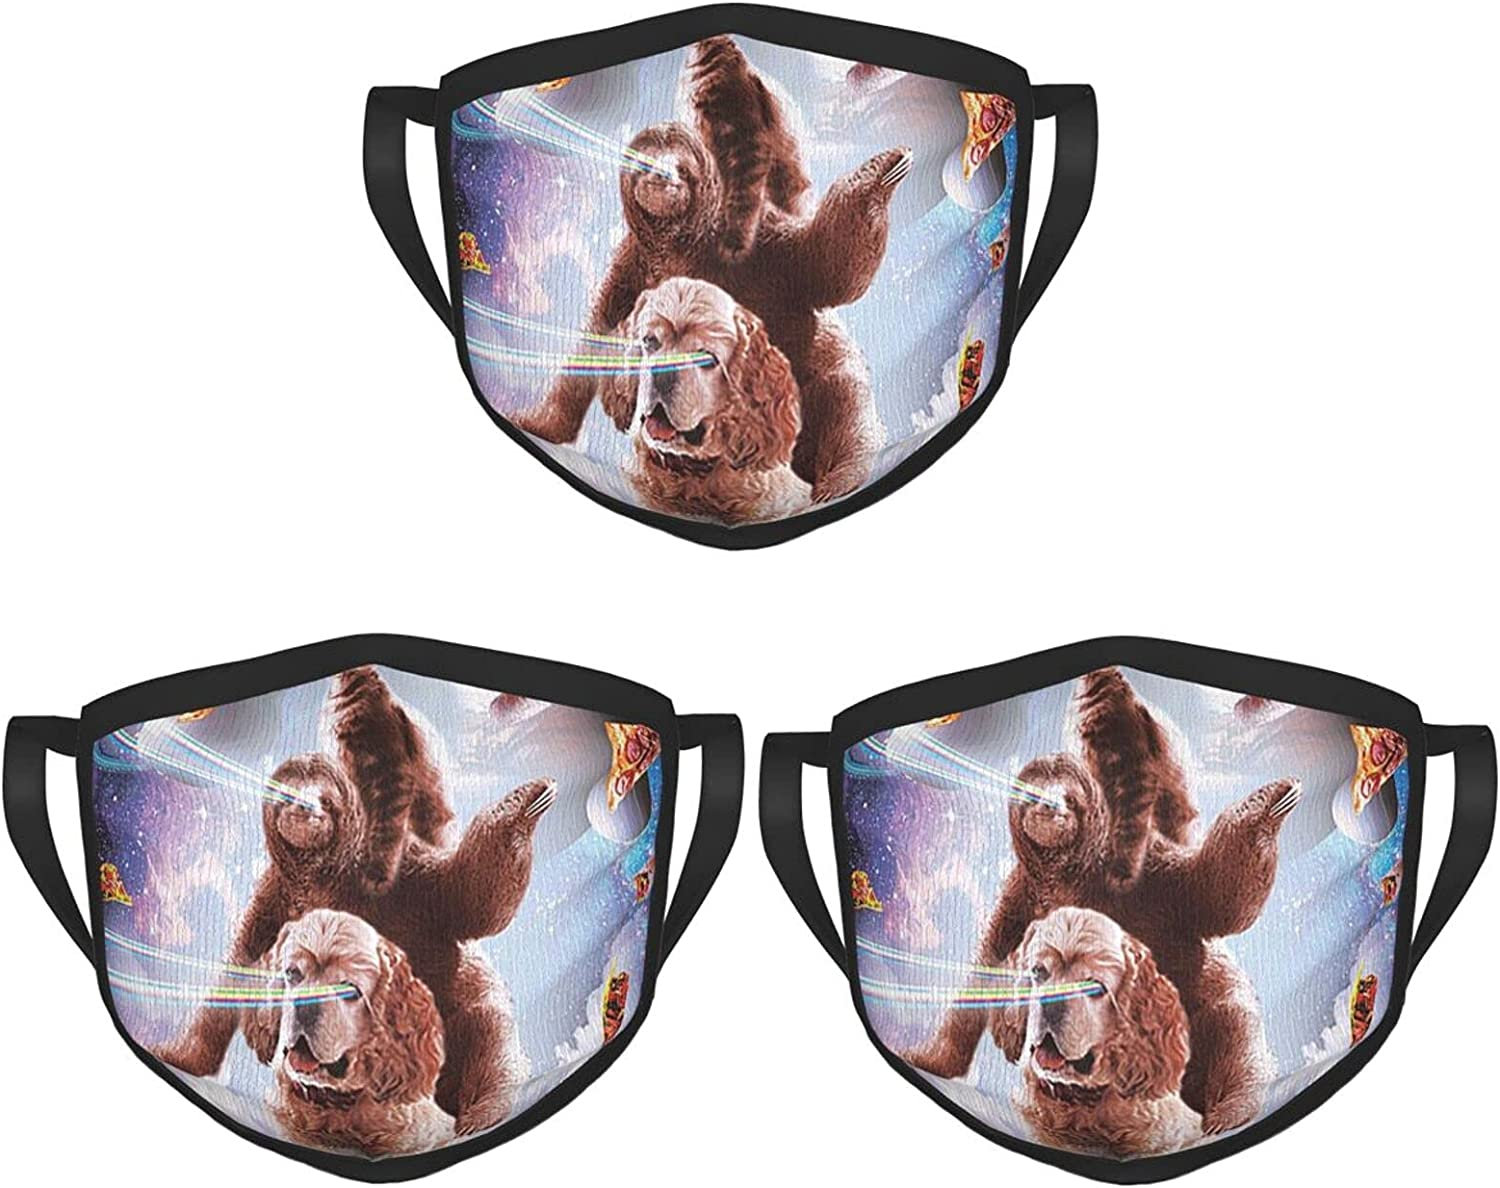 Balaclava Earmuffs Space Cat Laser Eyes Riding Sloth Dog Face Mouth Cover Mask Reusable Dust Scarf Towel Cover Headwrap